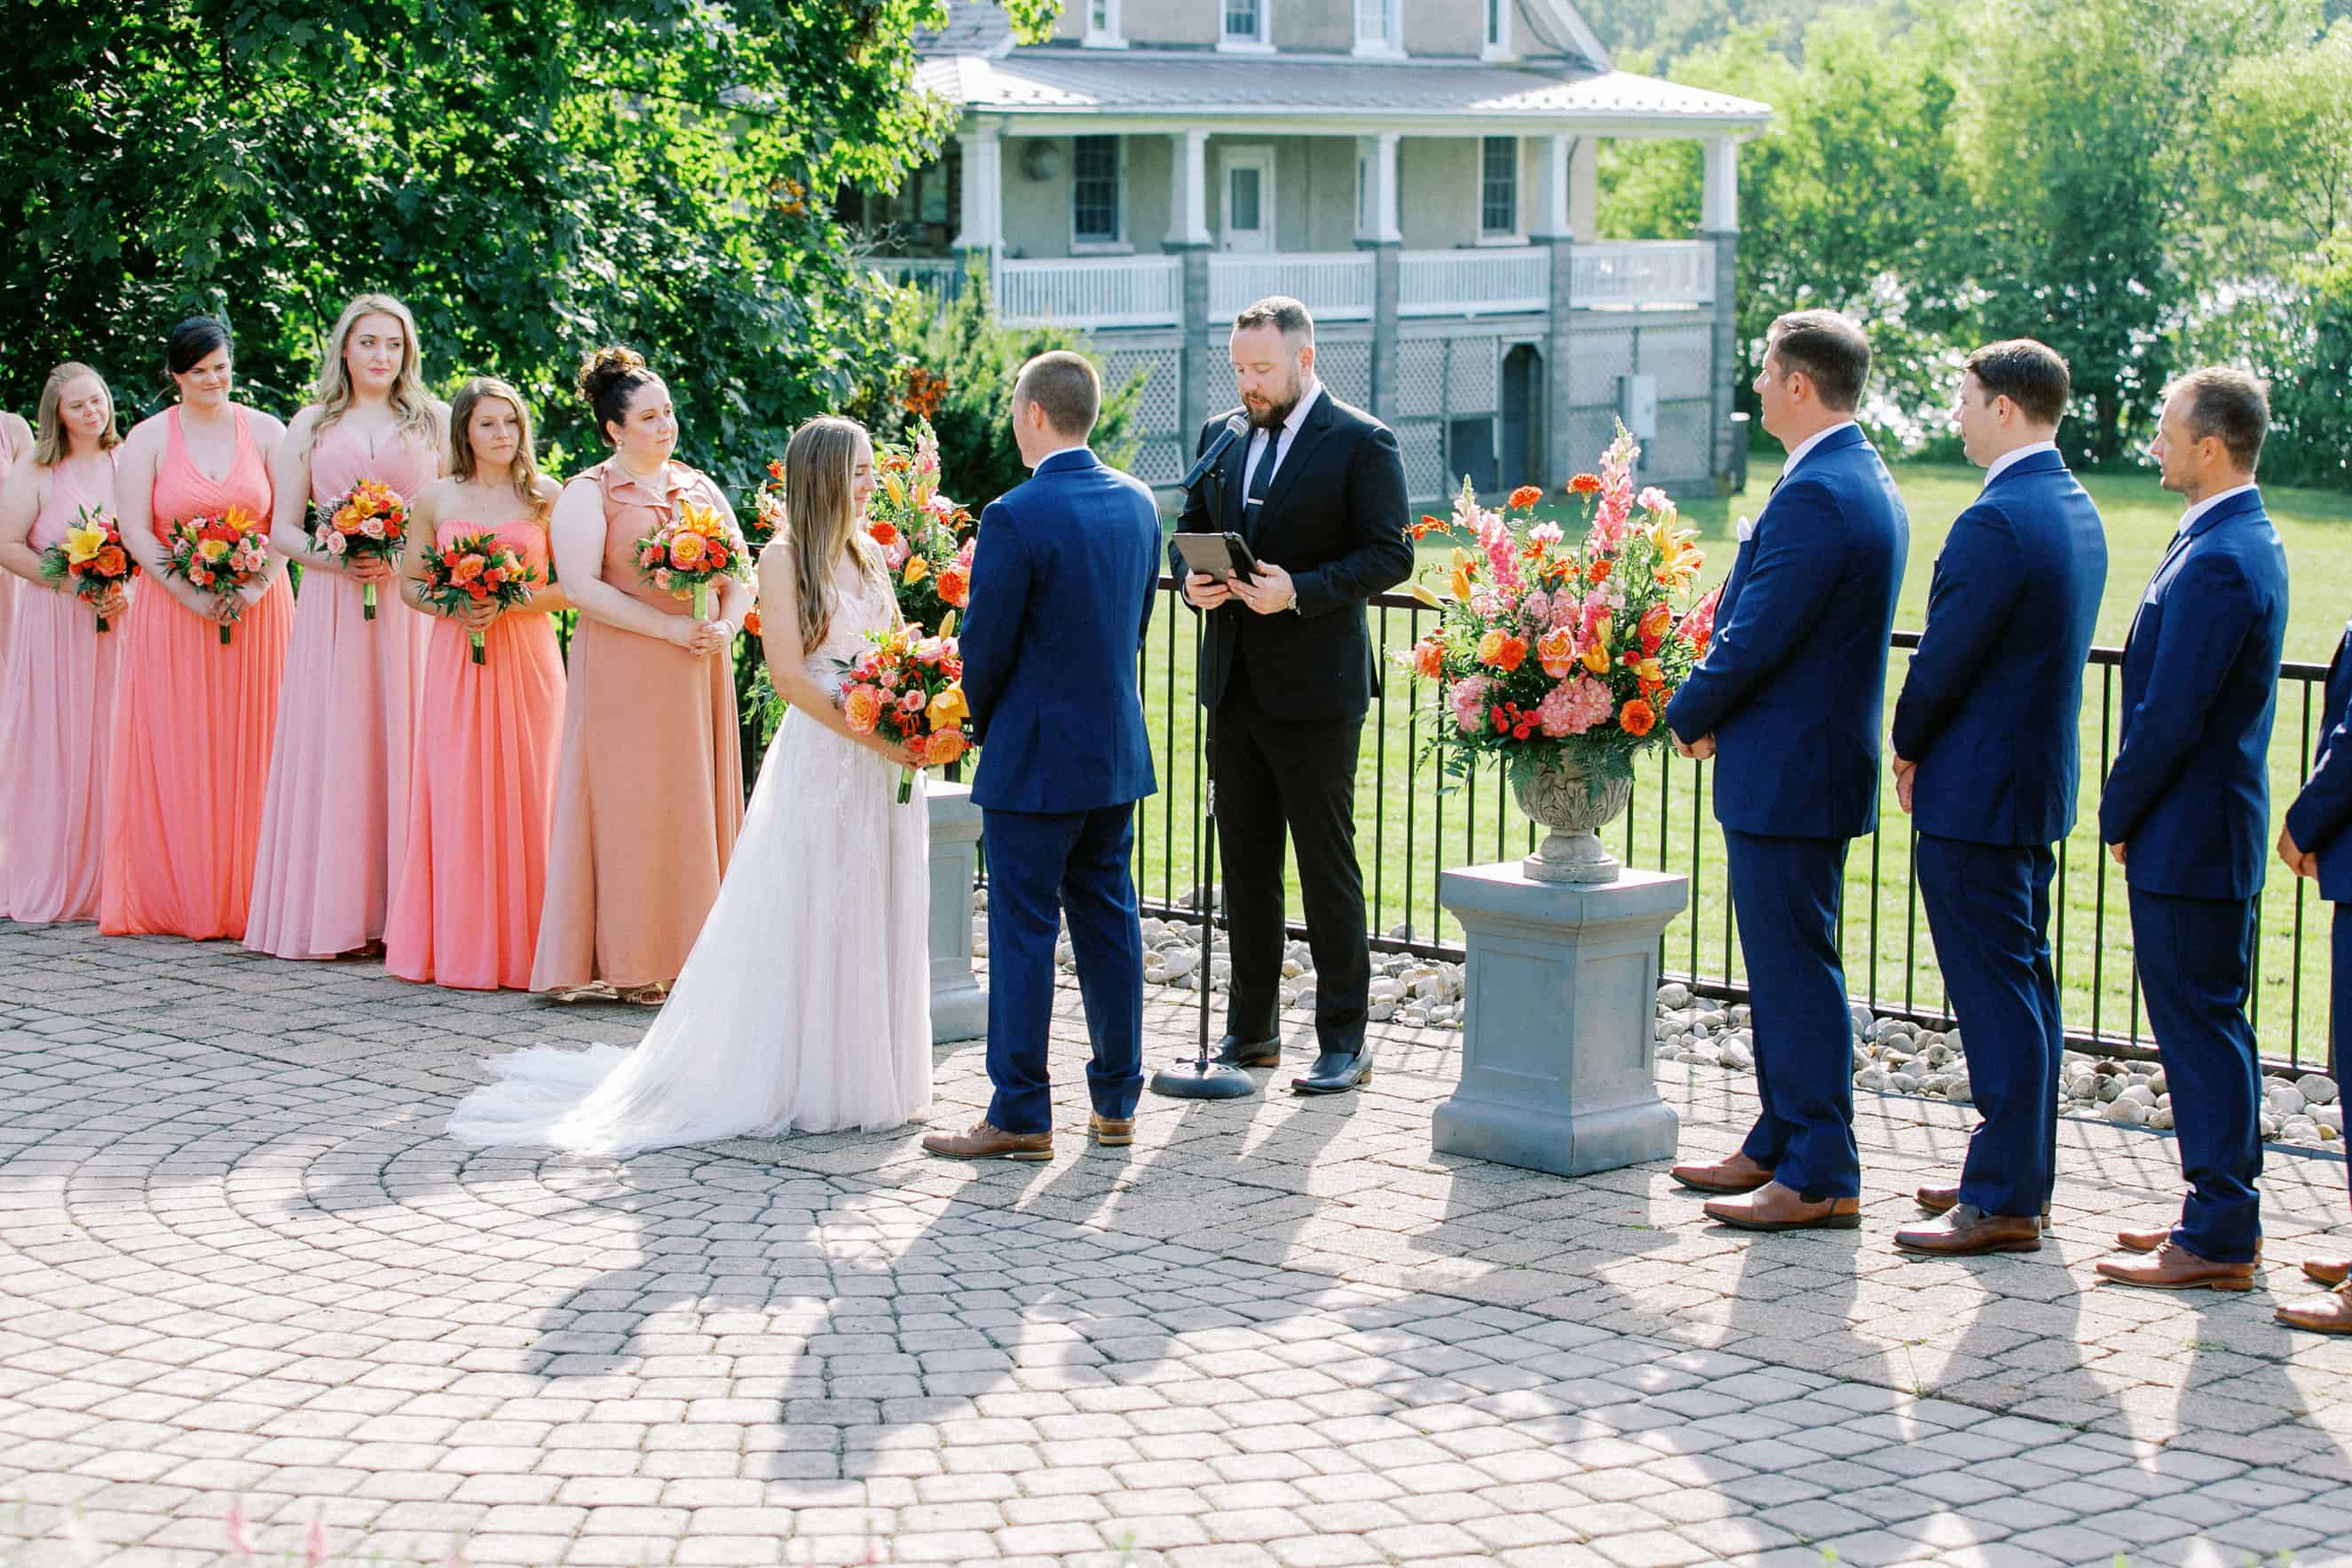 Wedding Ceremony Outdoors at The Lake House Inn